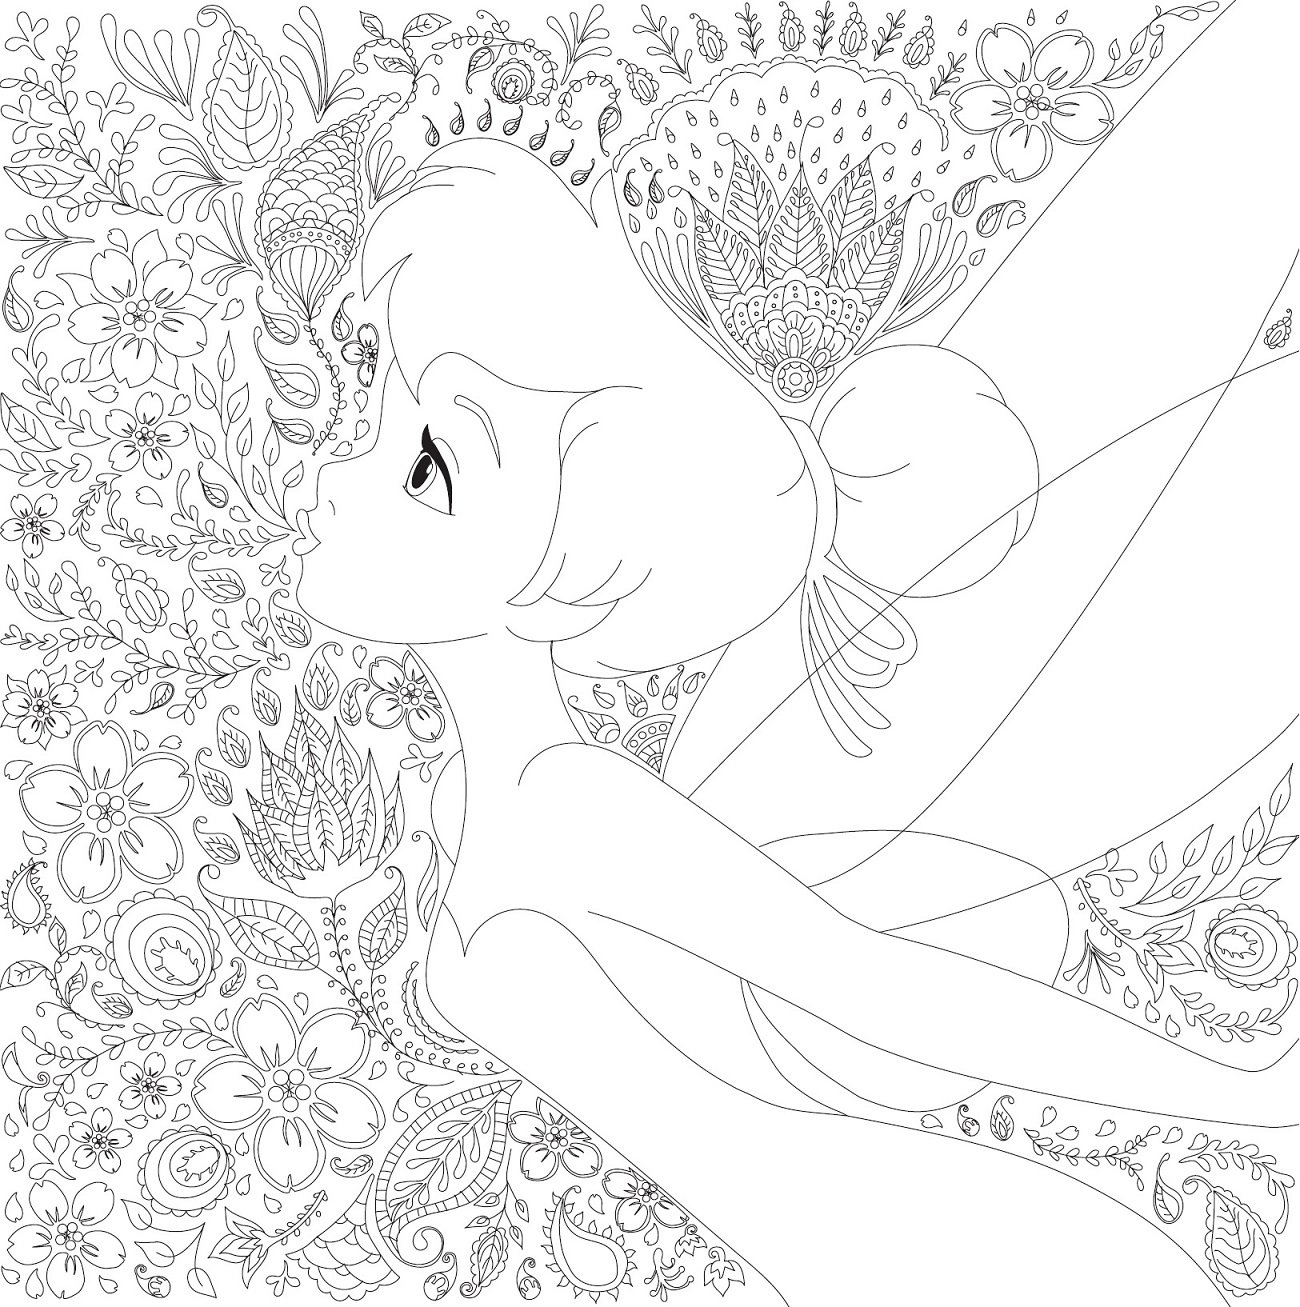 Disney Girls Coloring Book With Little Friends 世界の花模様を楽しむ